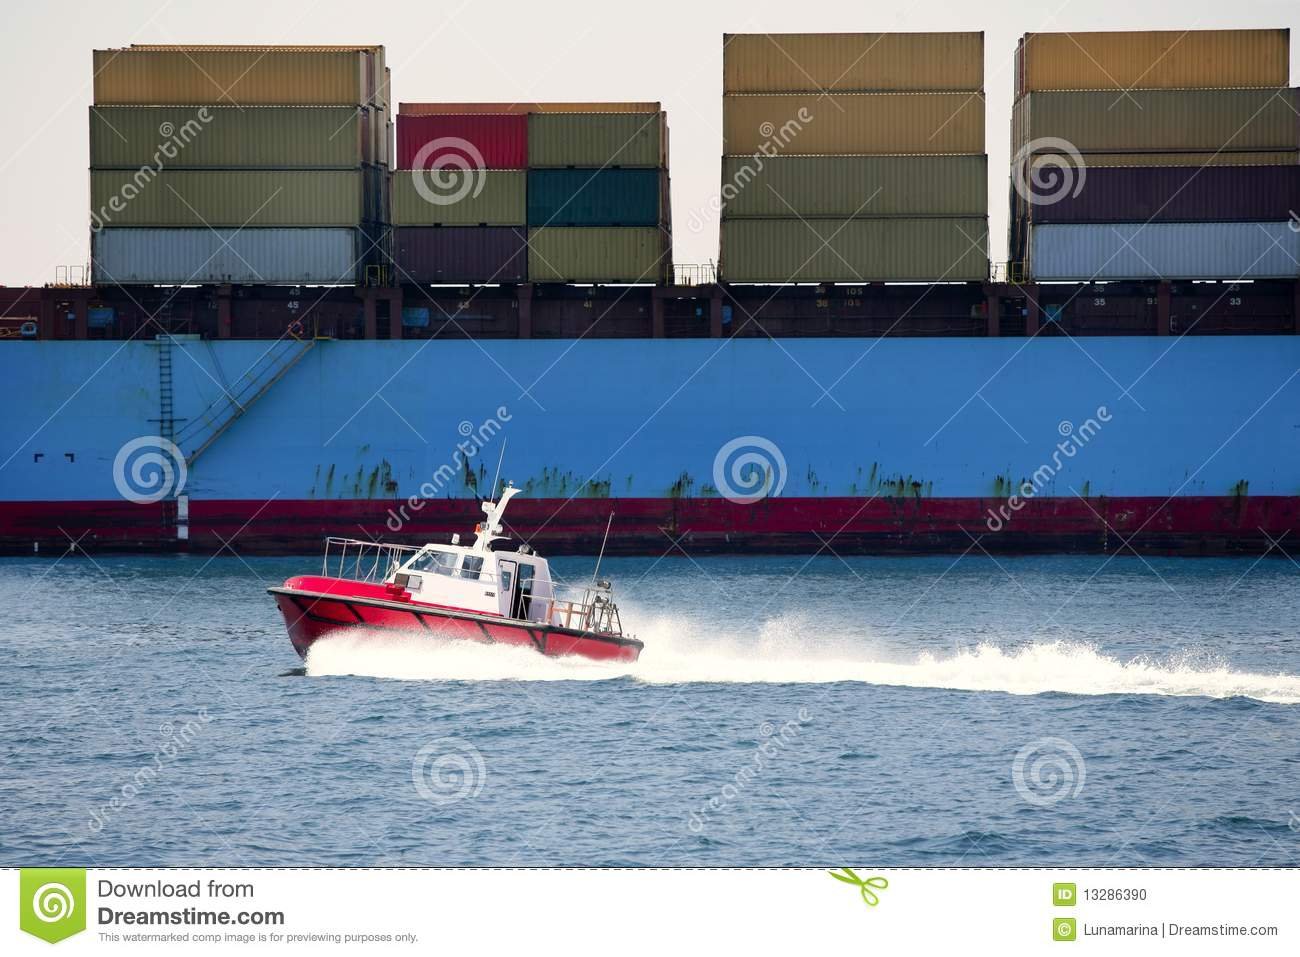 Boat port pilots compared to cargo container